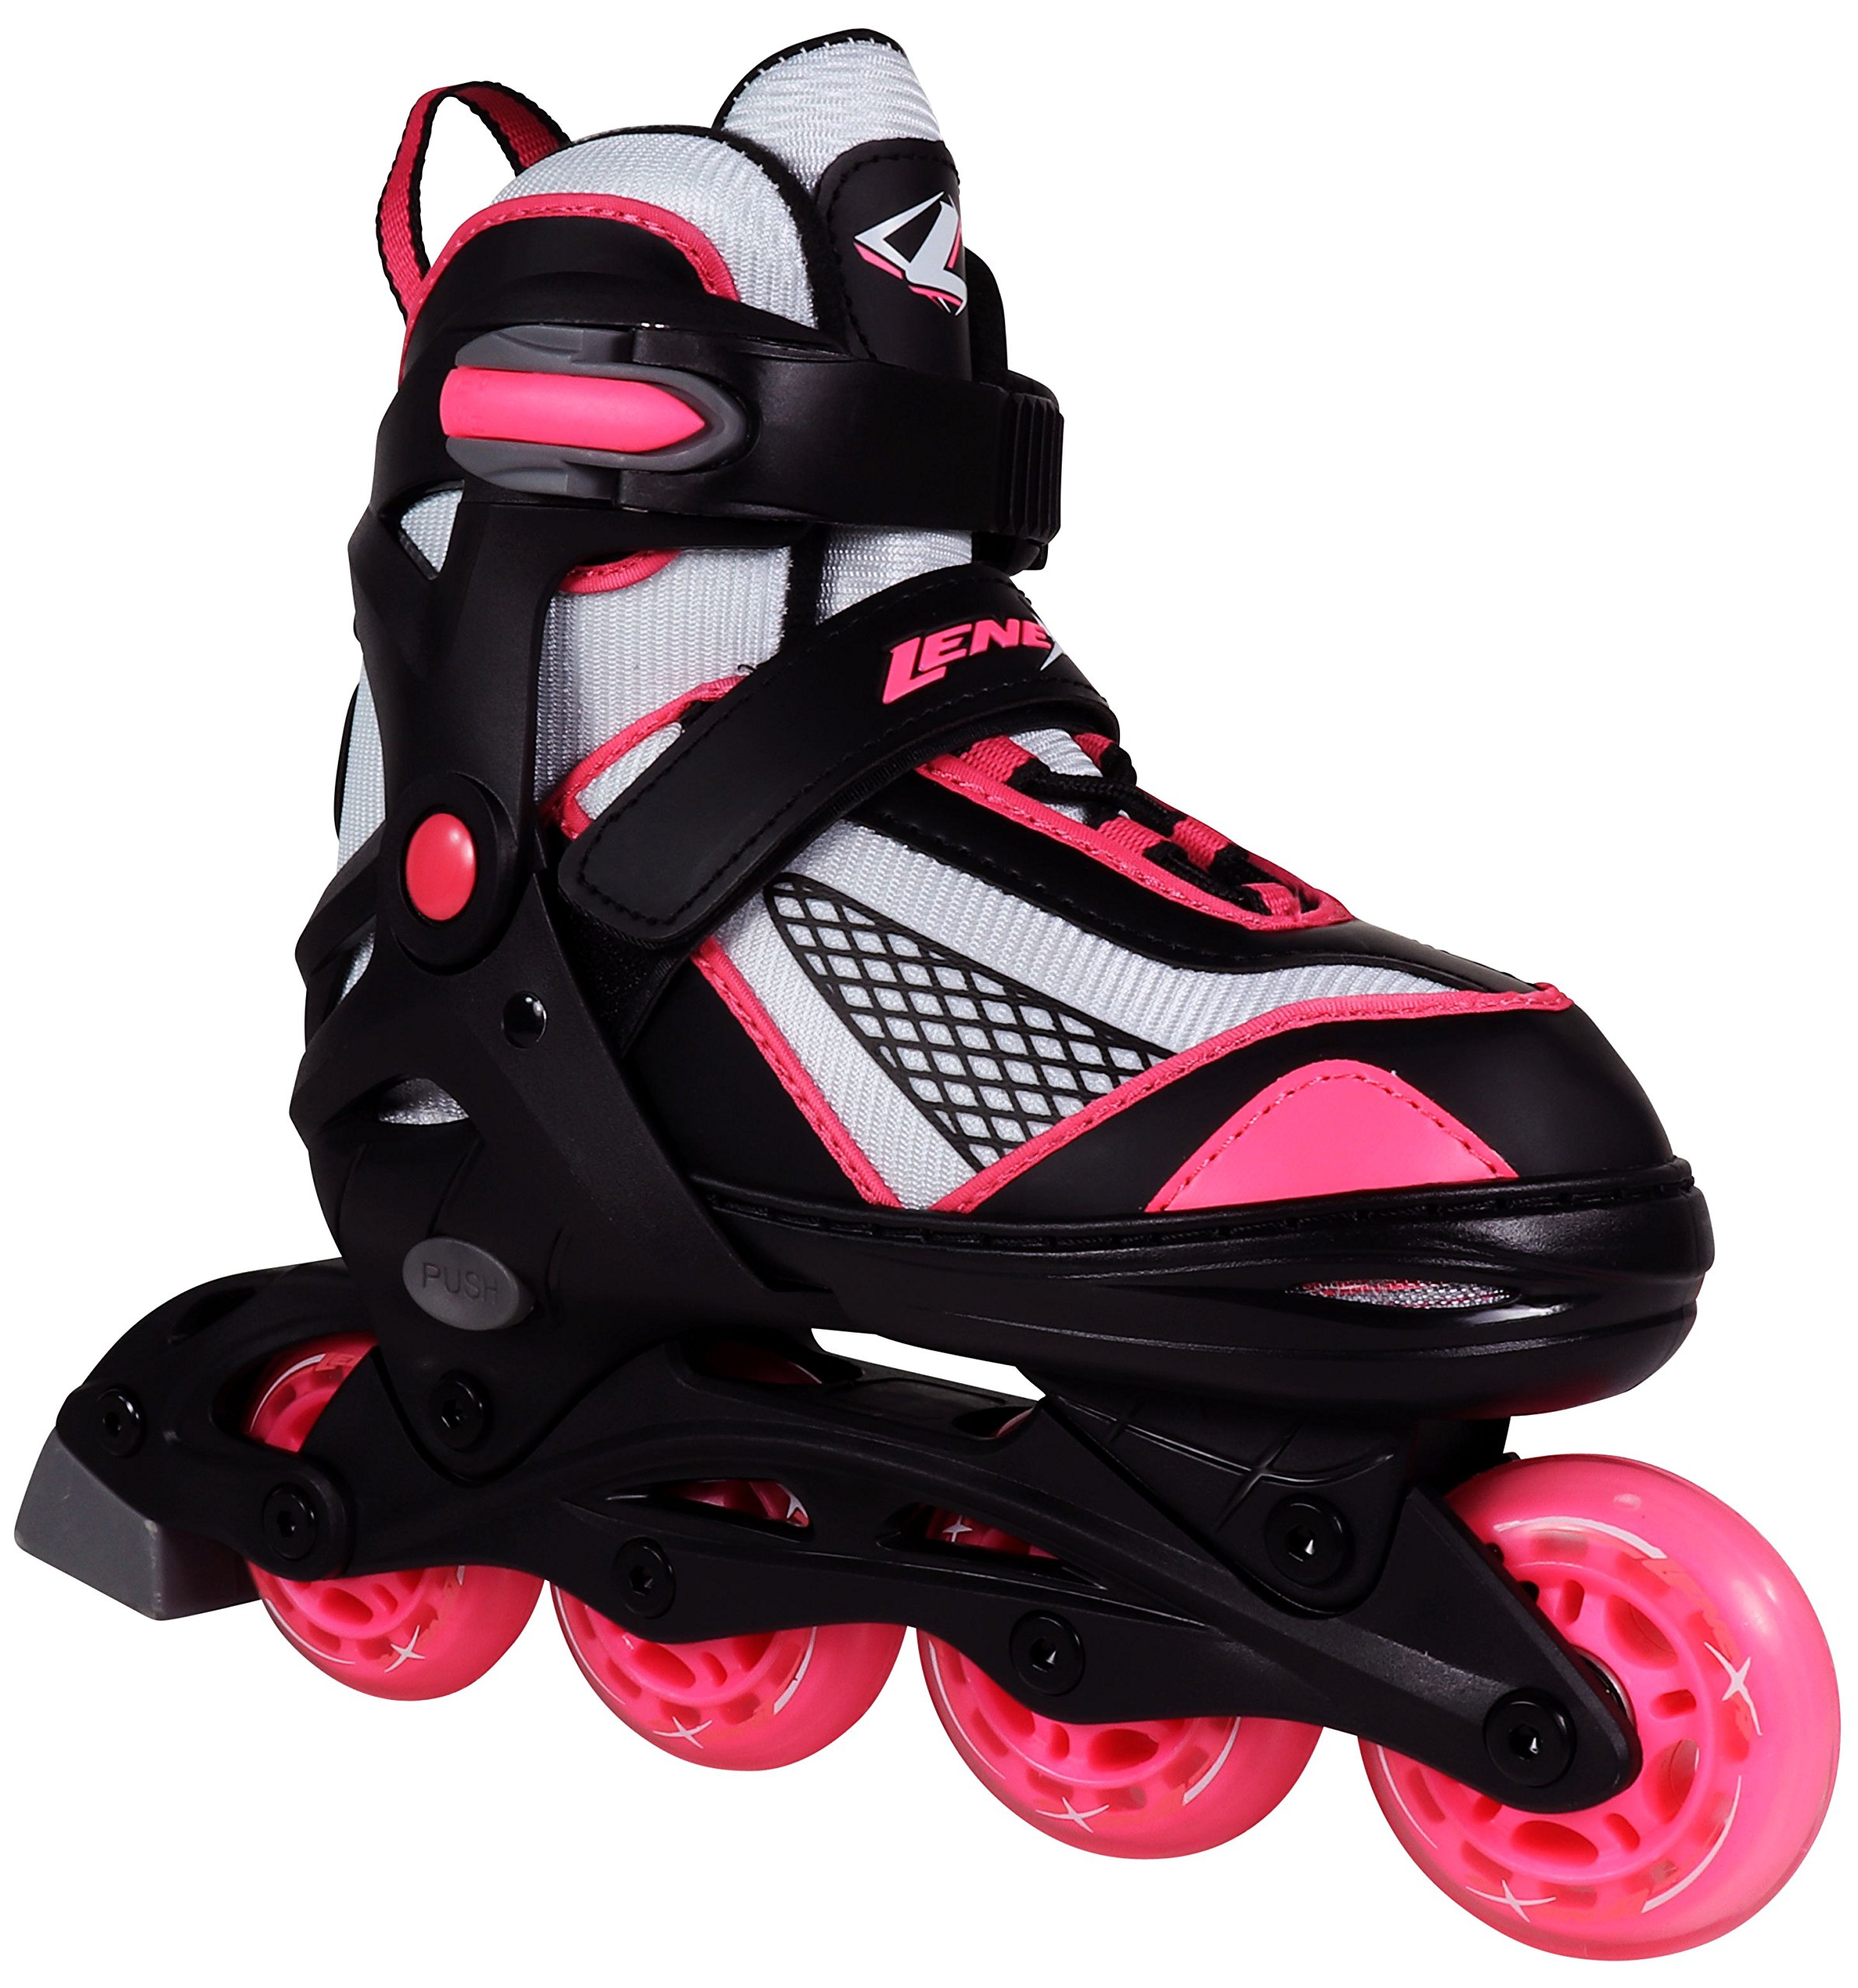 Lenexa Inline Skates for Girls with Adjustable Sizing Venus Kids in-line roller skate blades | Comfortable fit | Safety non-slip wheels | Made for Fun (Black/Pink, Small)